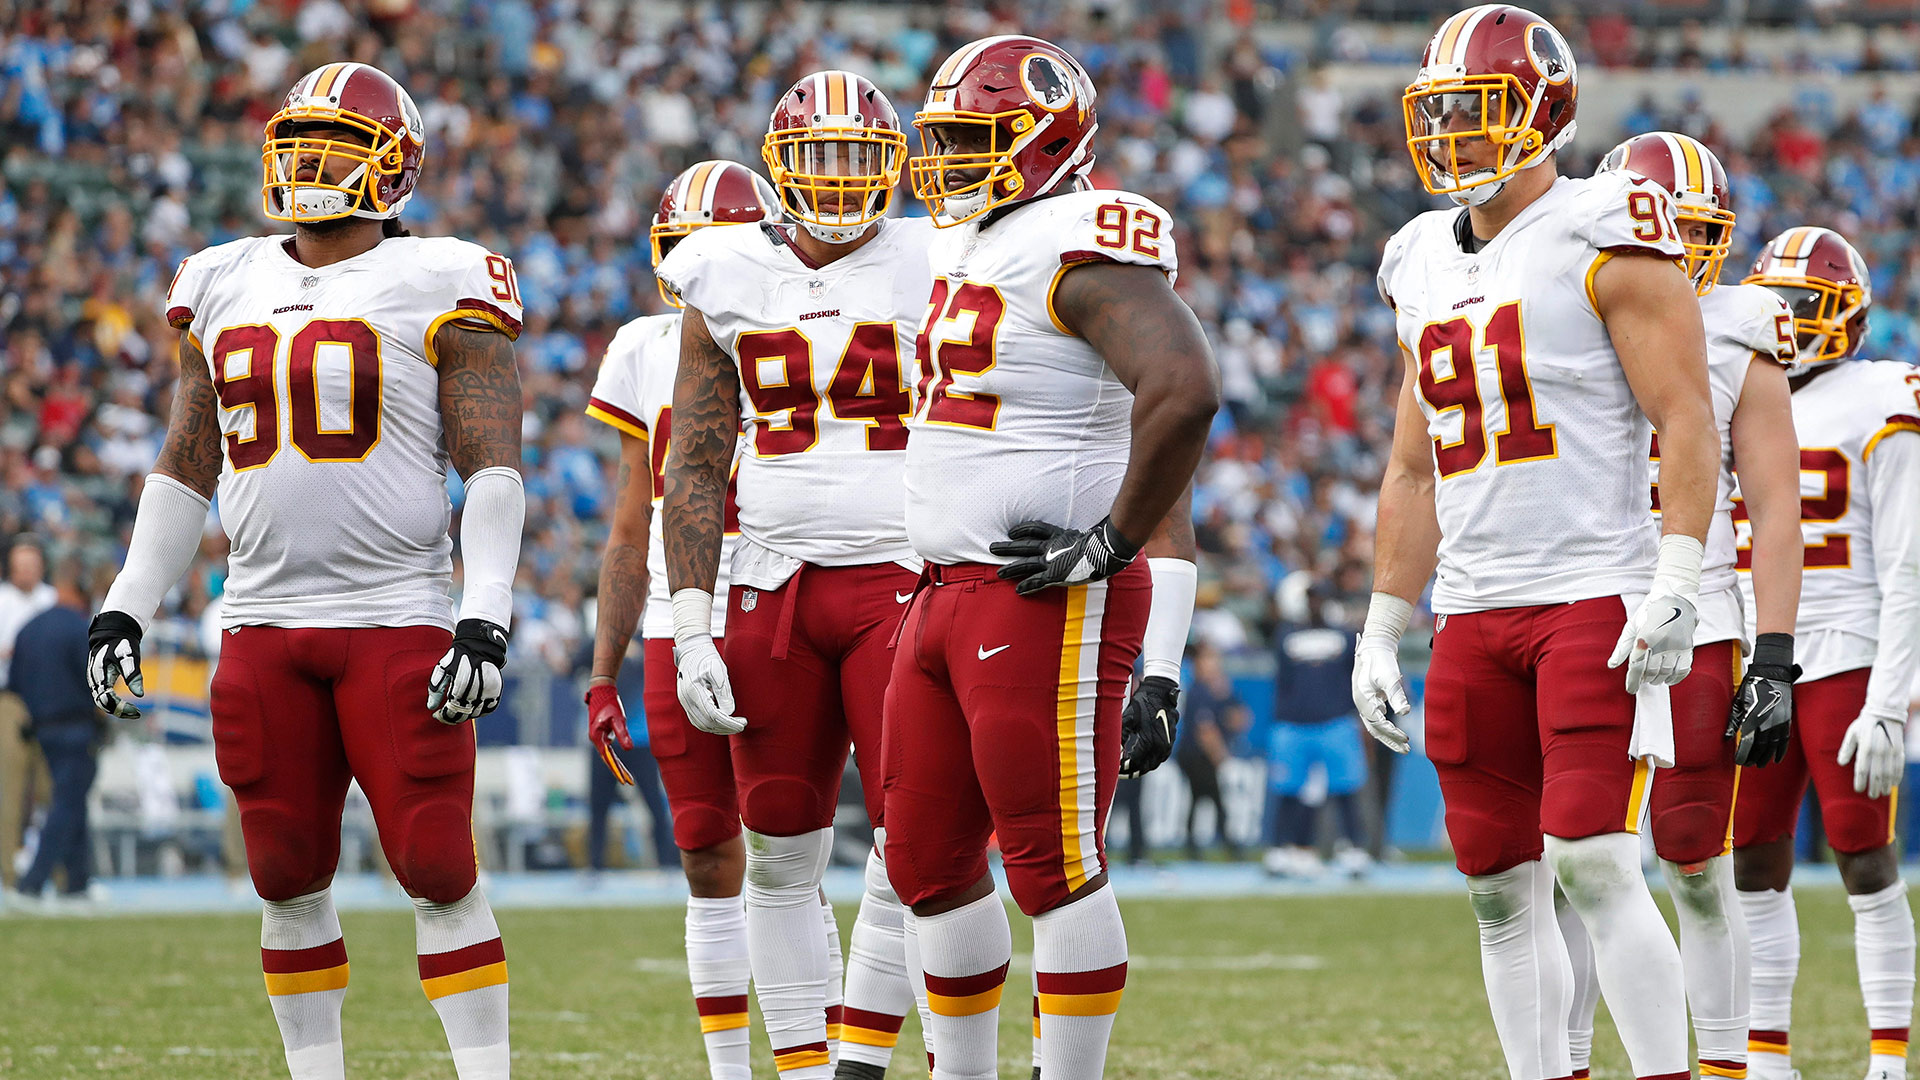 Washington Redskins defensive lineman Ziggy Hood (90), linebacker Preston Smith (94), defensive lineman Stacy McGee (92) and linebacker Ryan Kerrigan (91) wait for the snap  during an NFL football game against the Los Angeles Chargers on Sunday, Dec. 10, 2017 in Carson, Calif. The Chargers won the game, 30-13. (Greg Trott via AP)